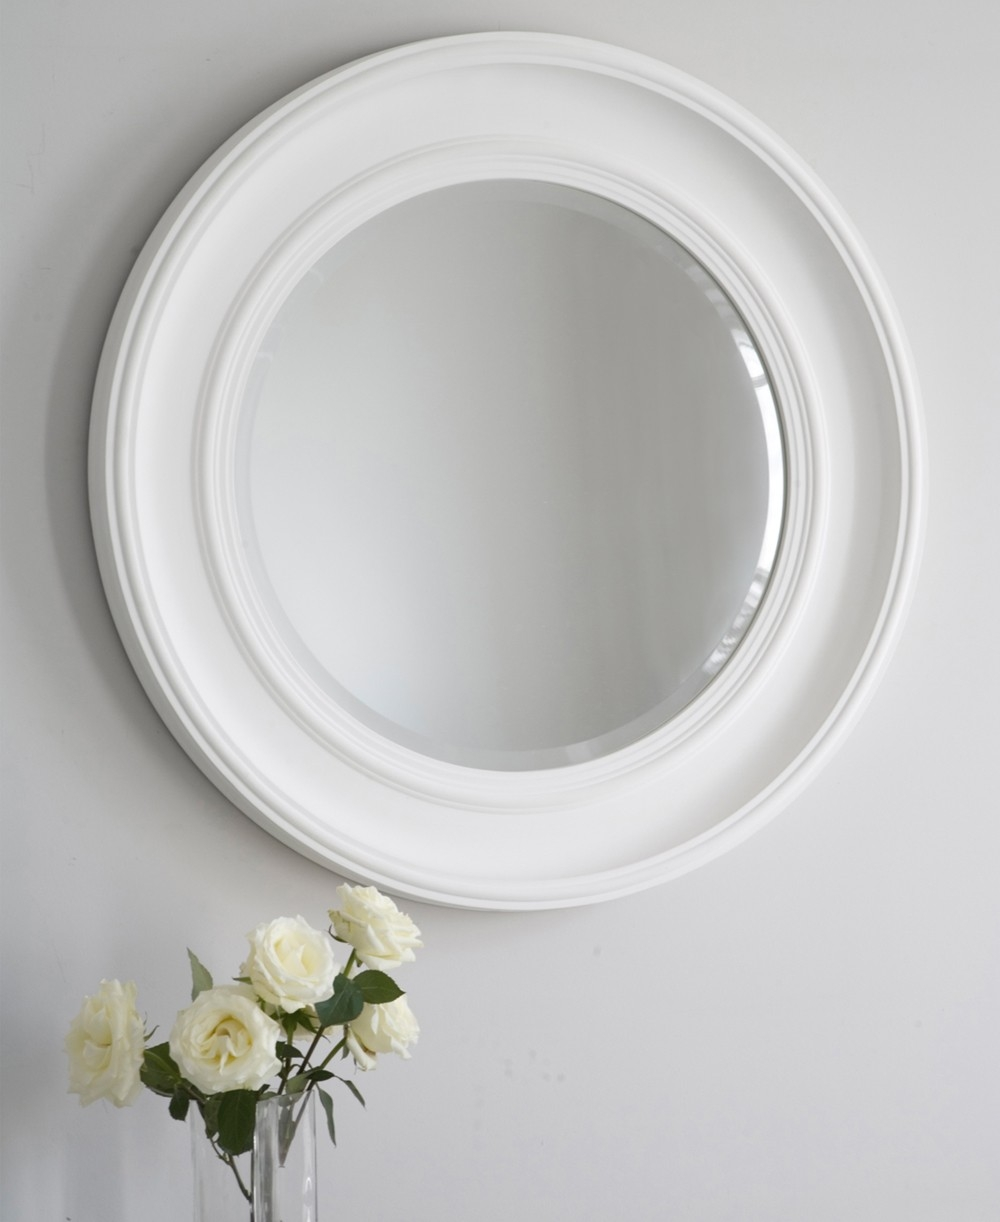 An Easy Round Mirror Ideal For A Living Room Hallway Or Bathroom Within White Round Mirror (Image 1 of 15)